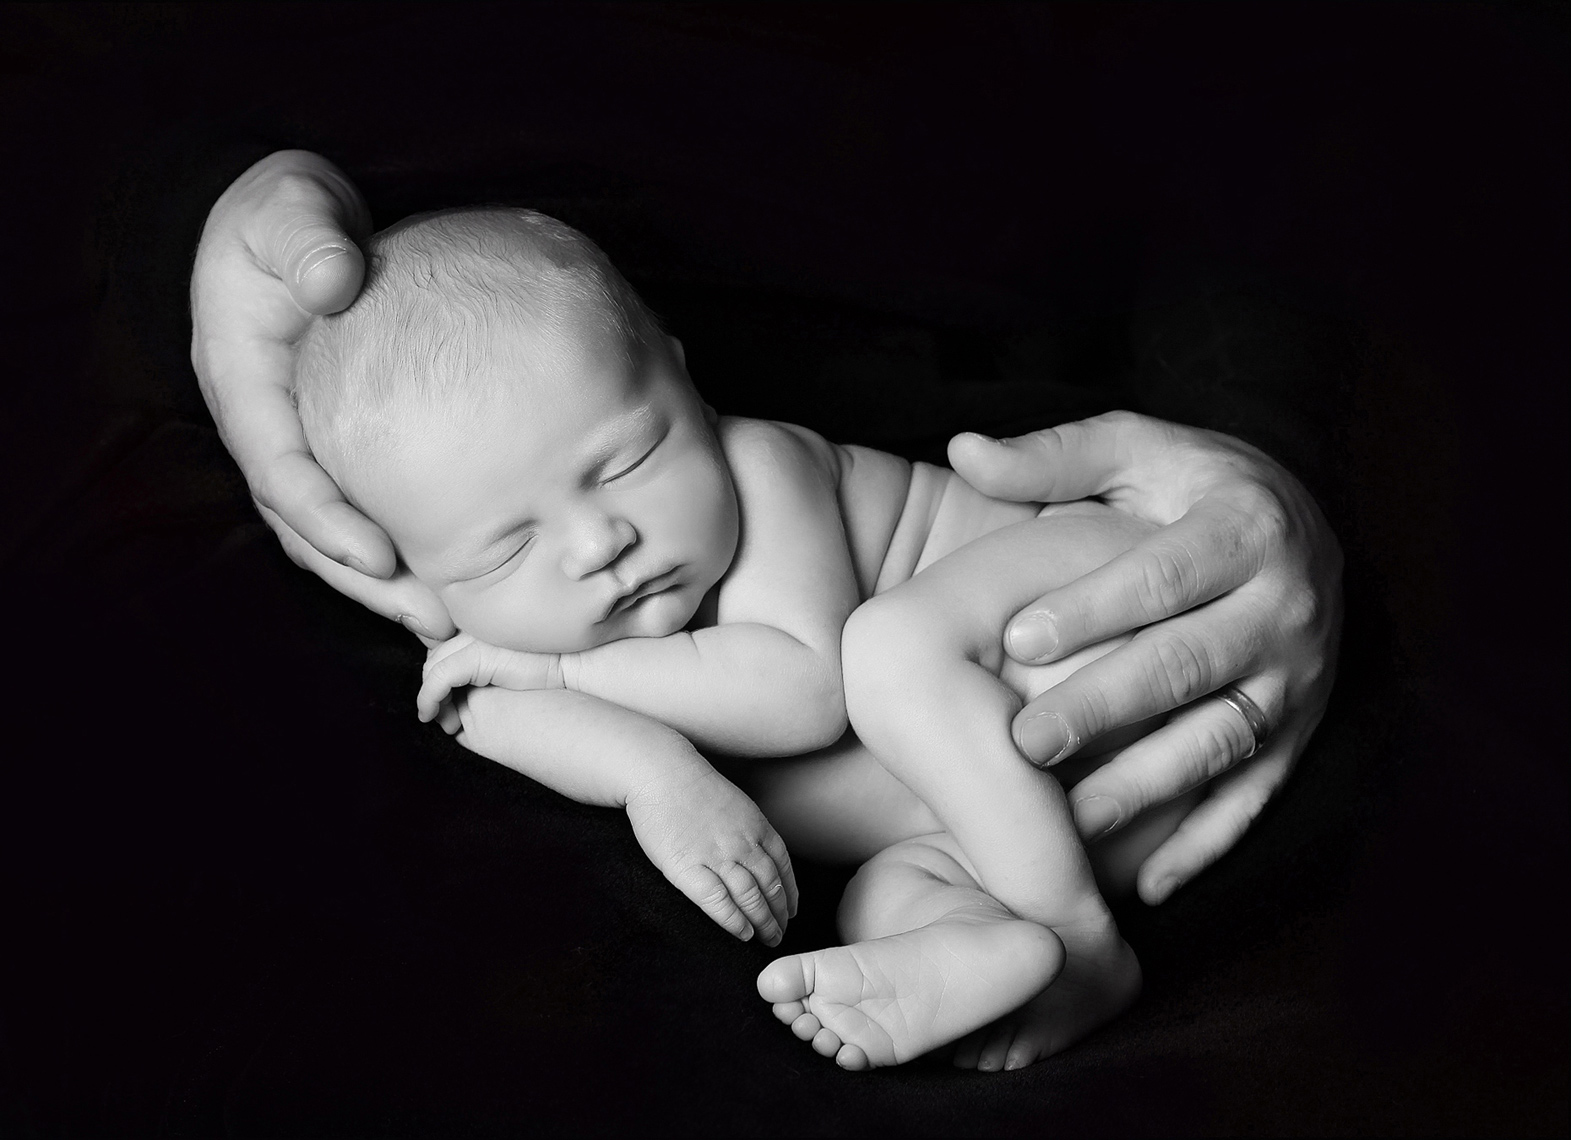 newborn baby photographers london ontario, baby, infant, paula tizzard